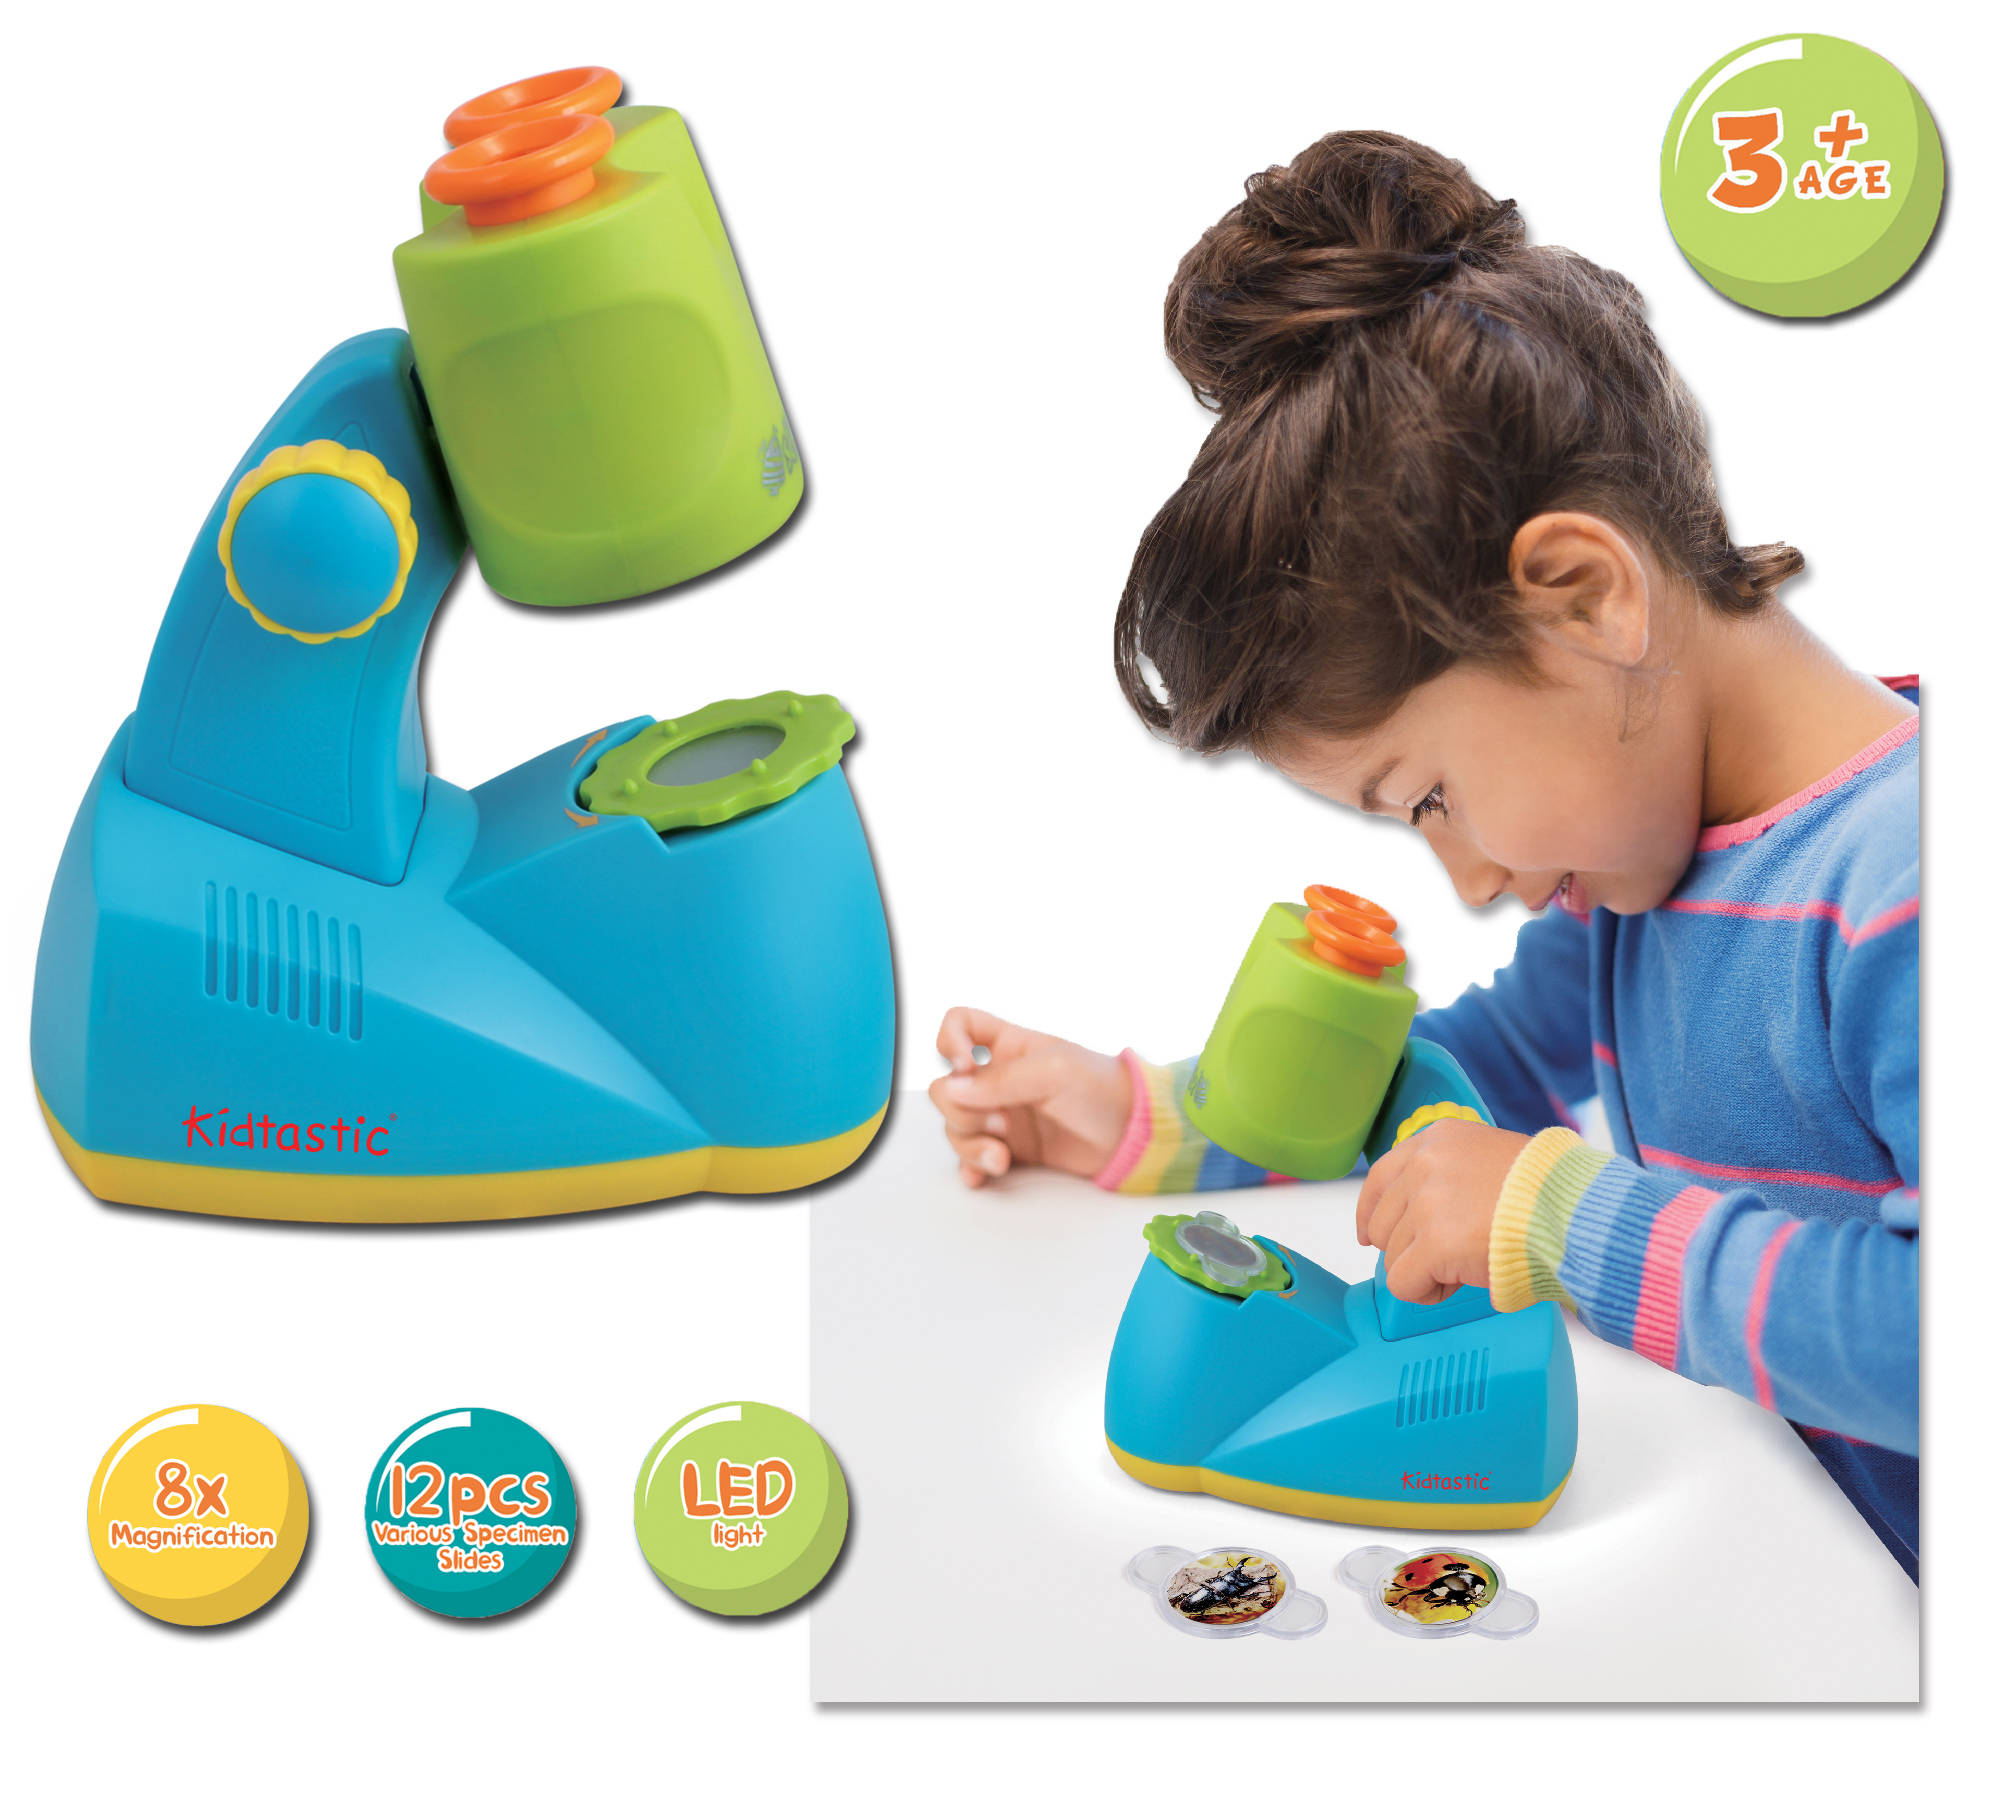 Kidtastic Microscope Science Kit For Kids Fun Learning